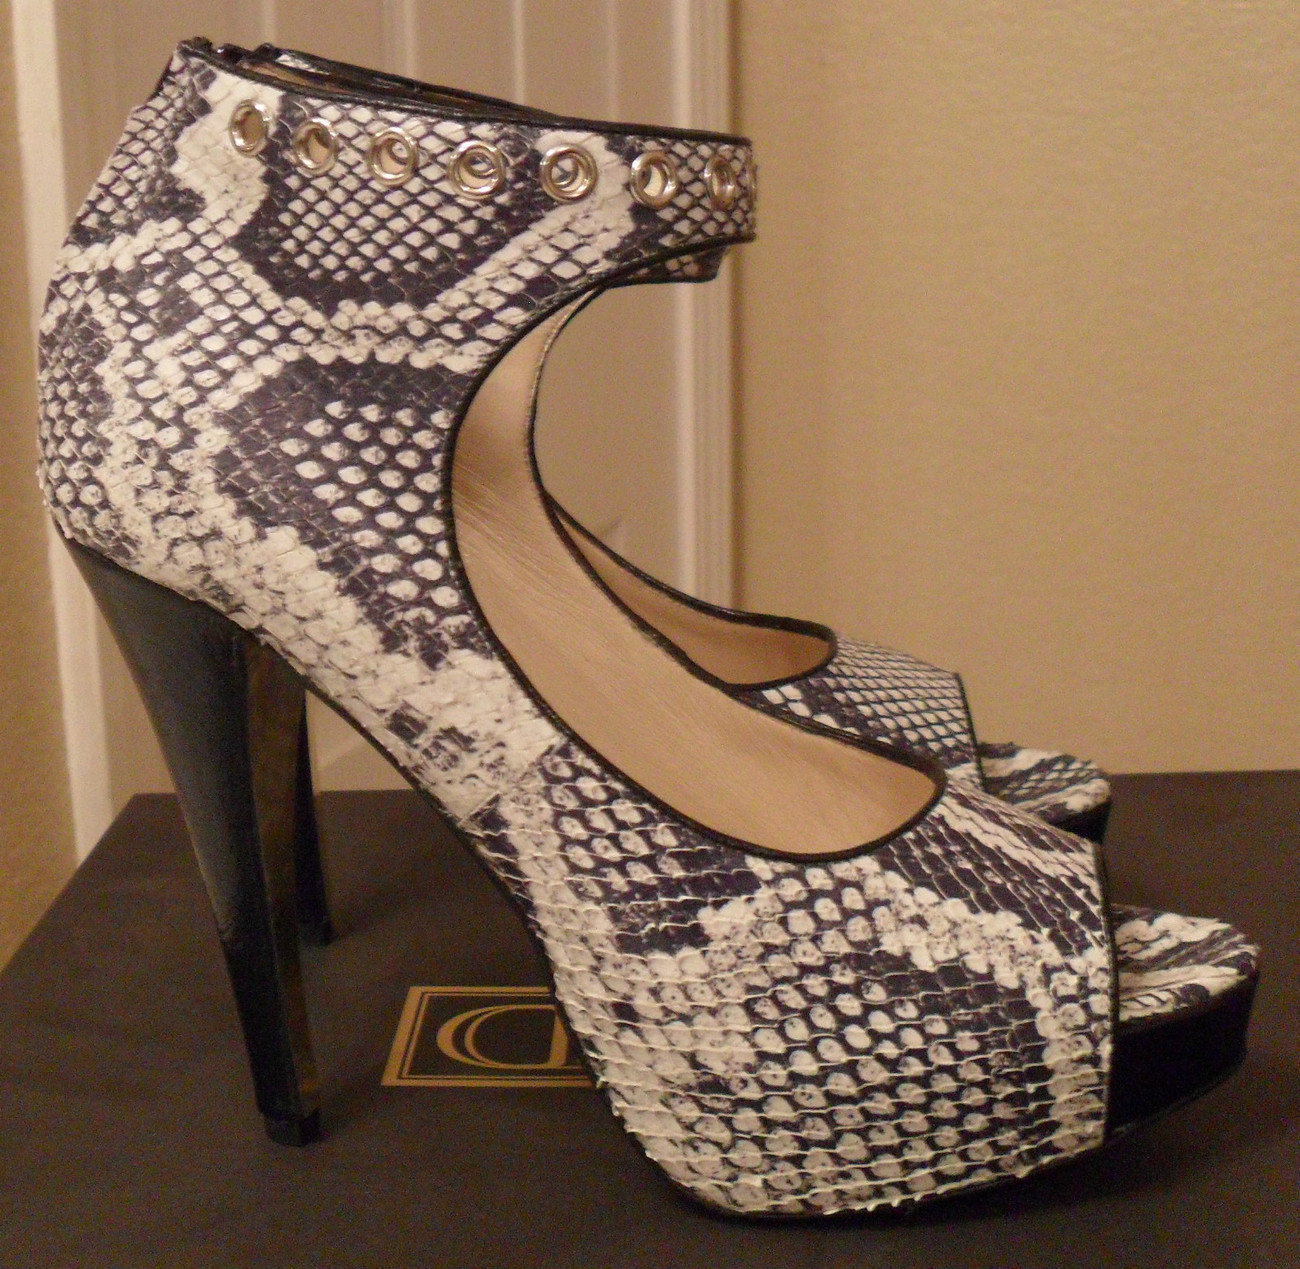 NIB BE & D Madison Boa Printed Leather Ankle Strap Pumps 7.5 NEW $525